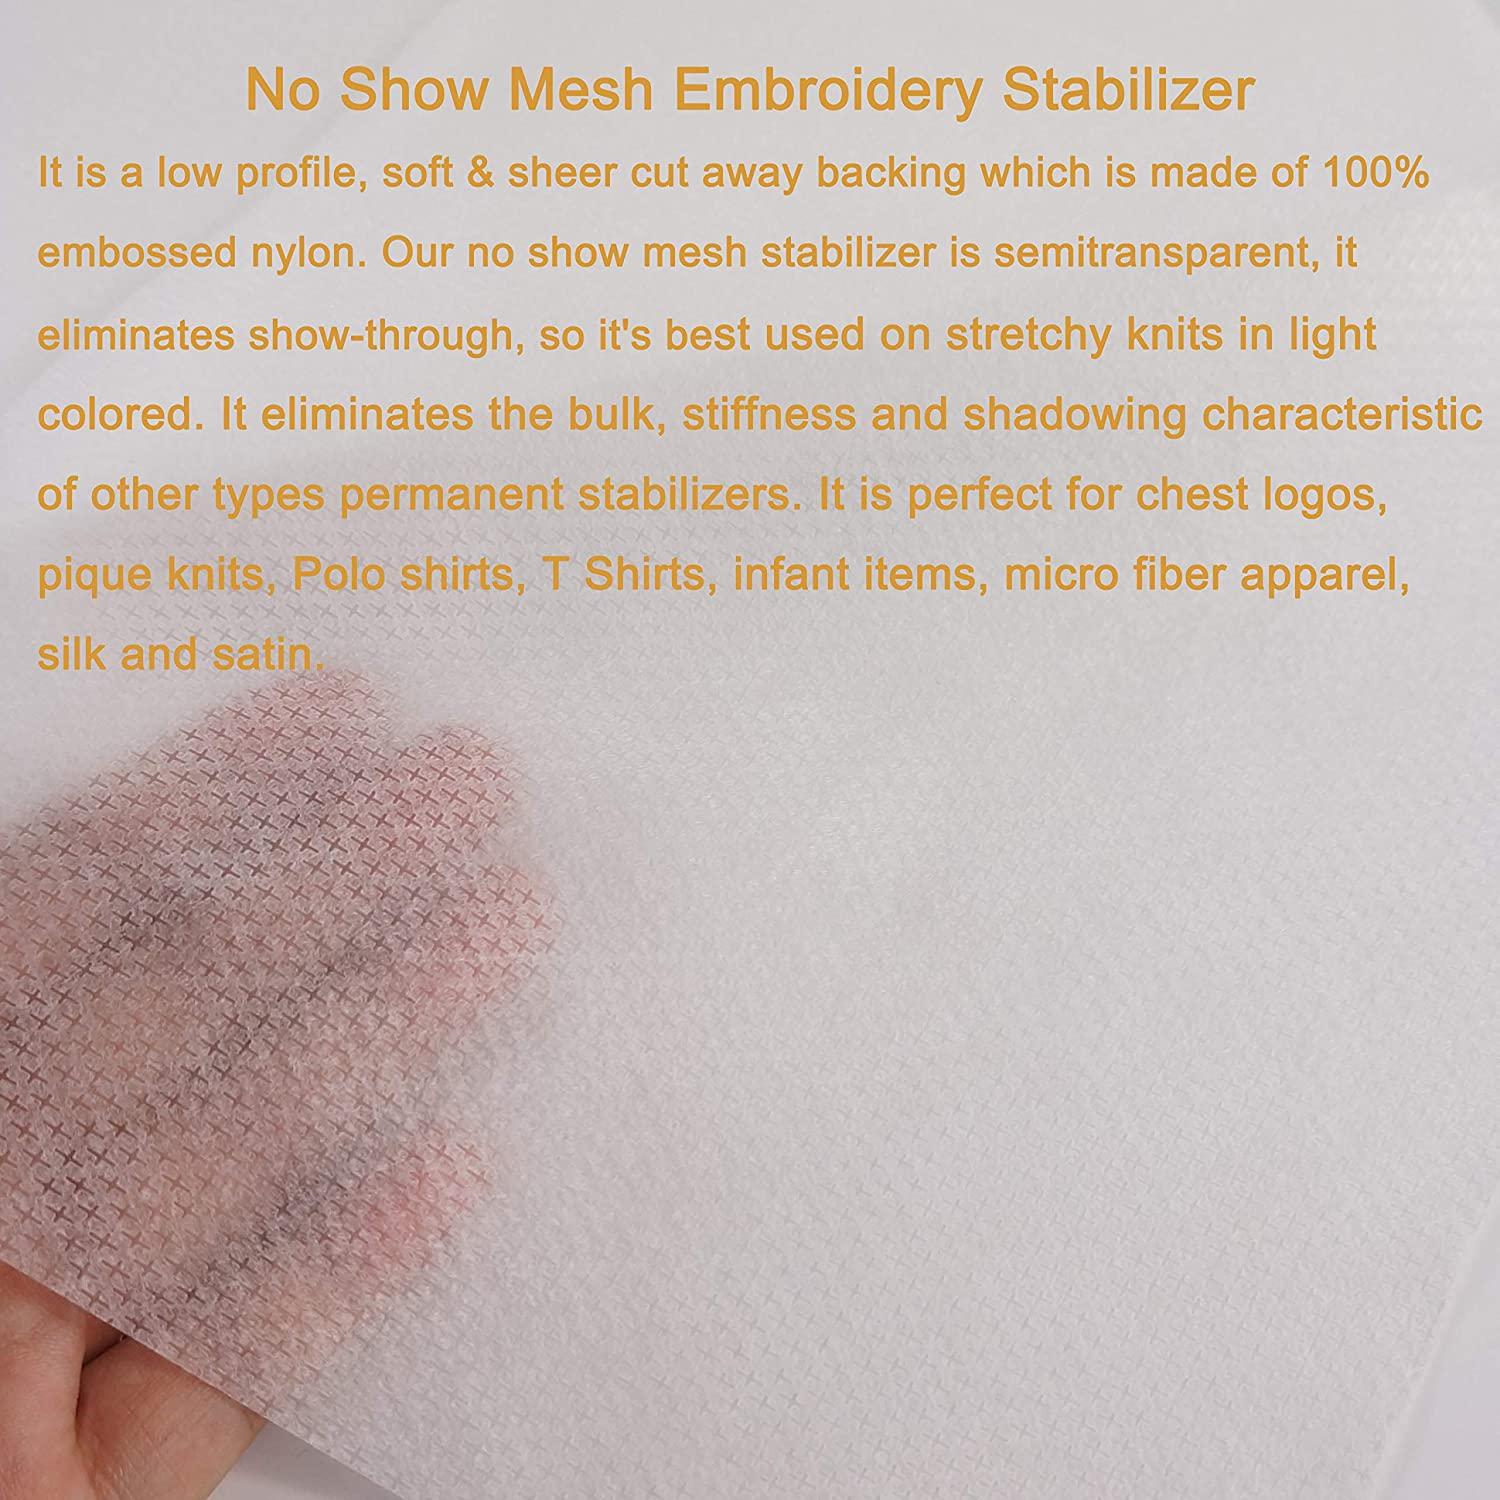 Light Weight 50gm 20cmx20cm New brothread No Show Mesh Machine Embroidery Stabilizer Backing 8x8 - 100 Precut Sheets 1.8oz - Fits Max Embroidery Area 15cmx15cm